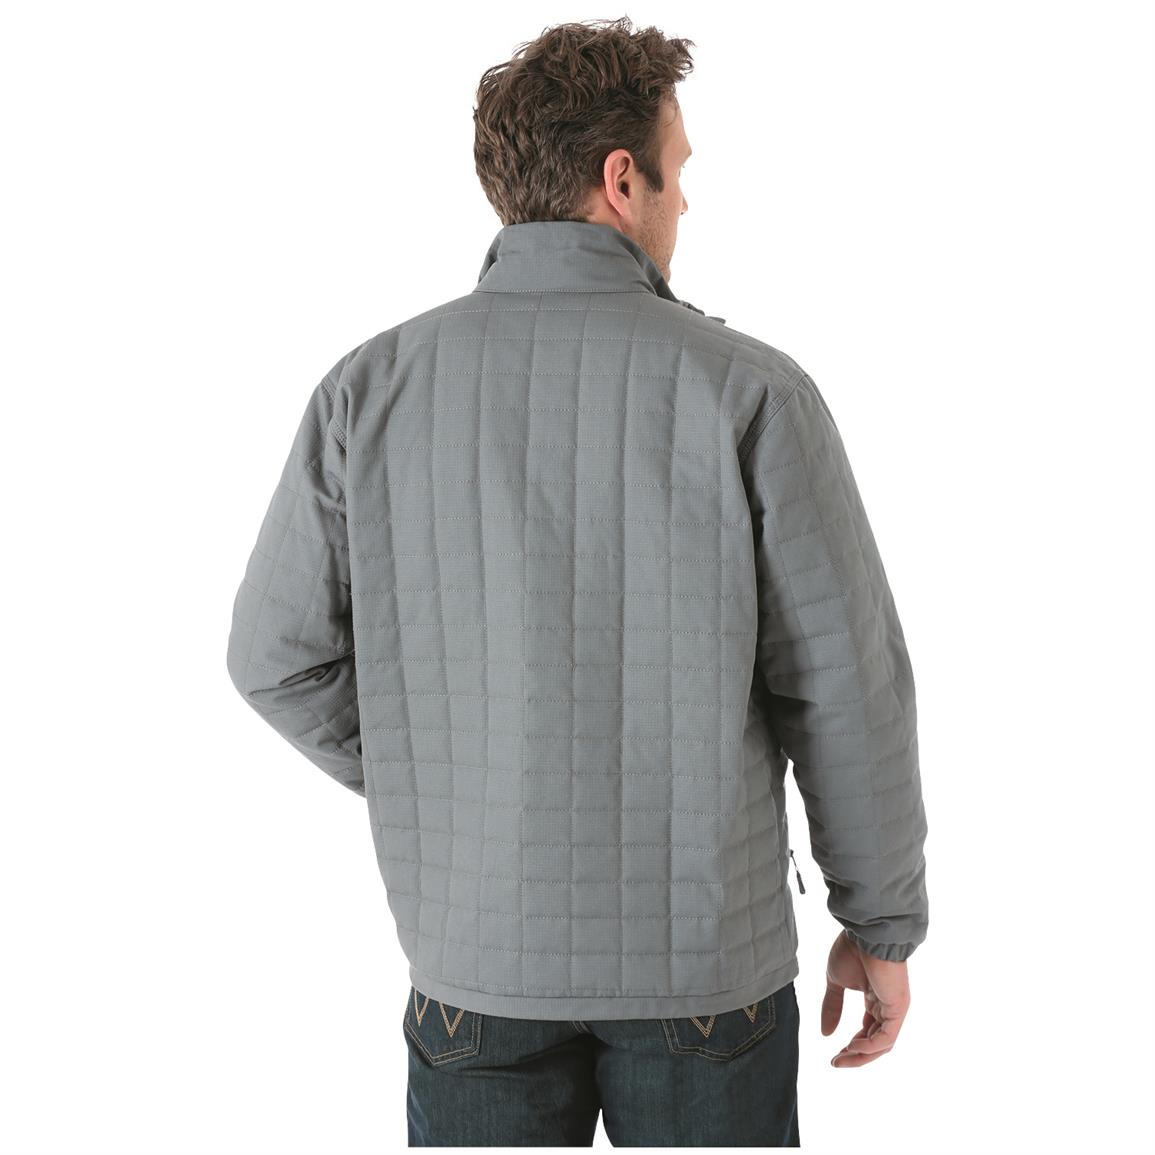 Wrangler Men's Chore Jacket, Rear View